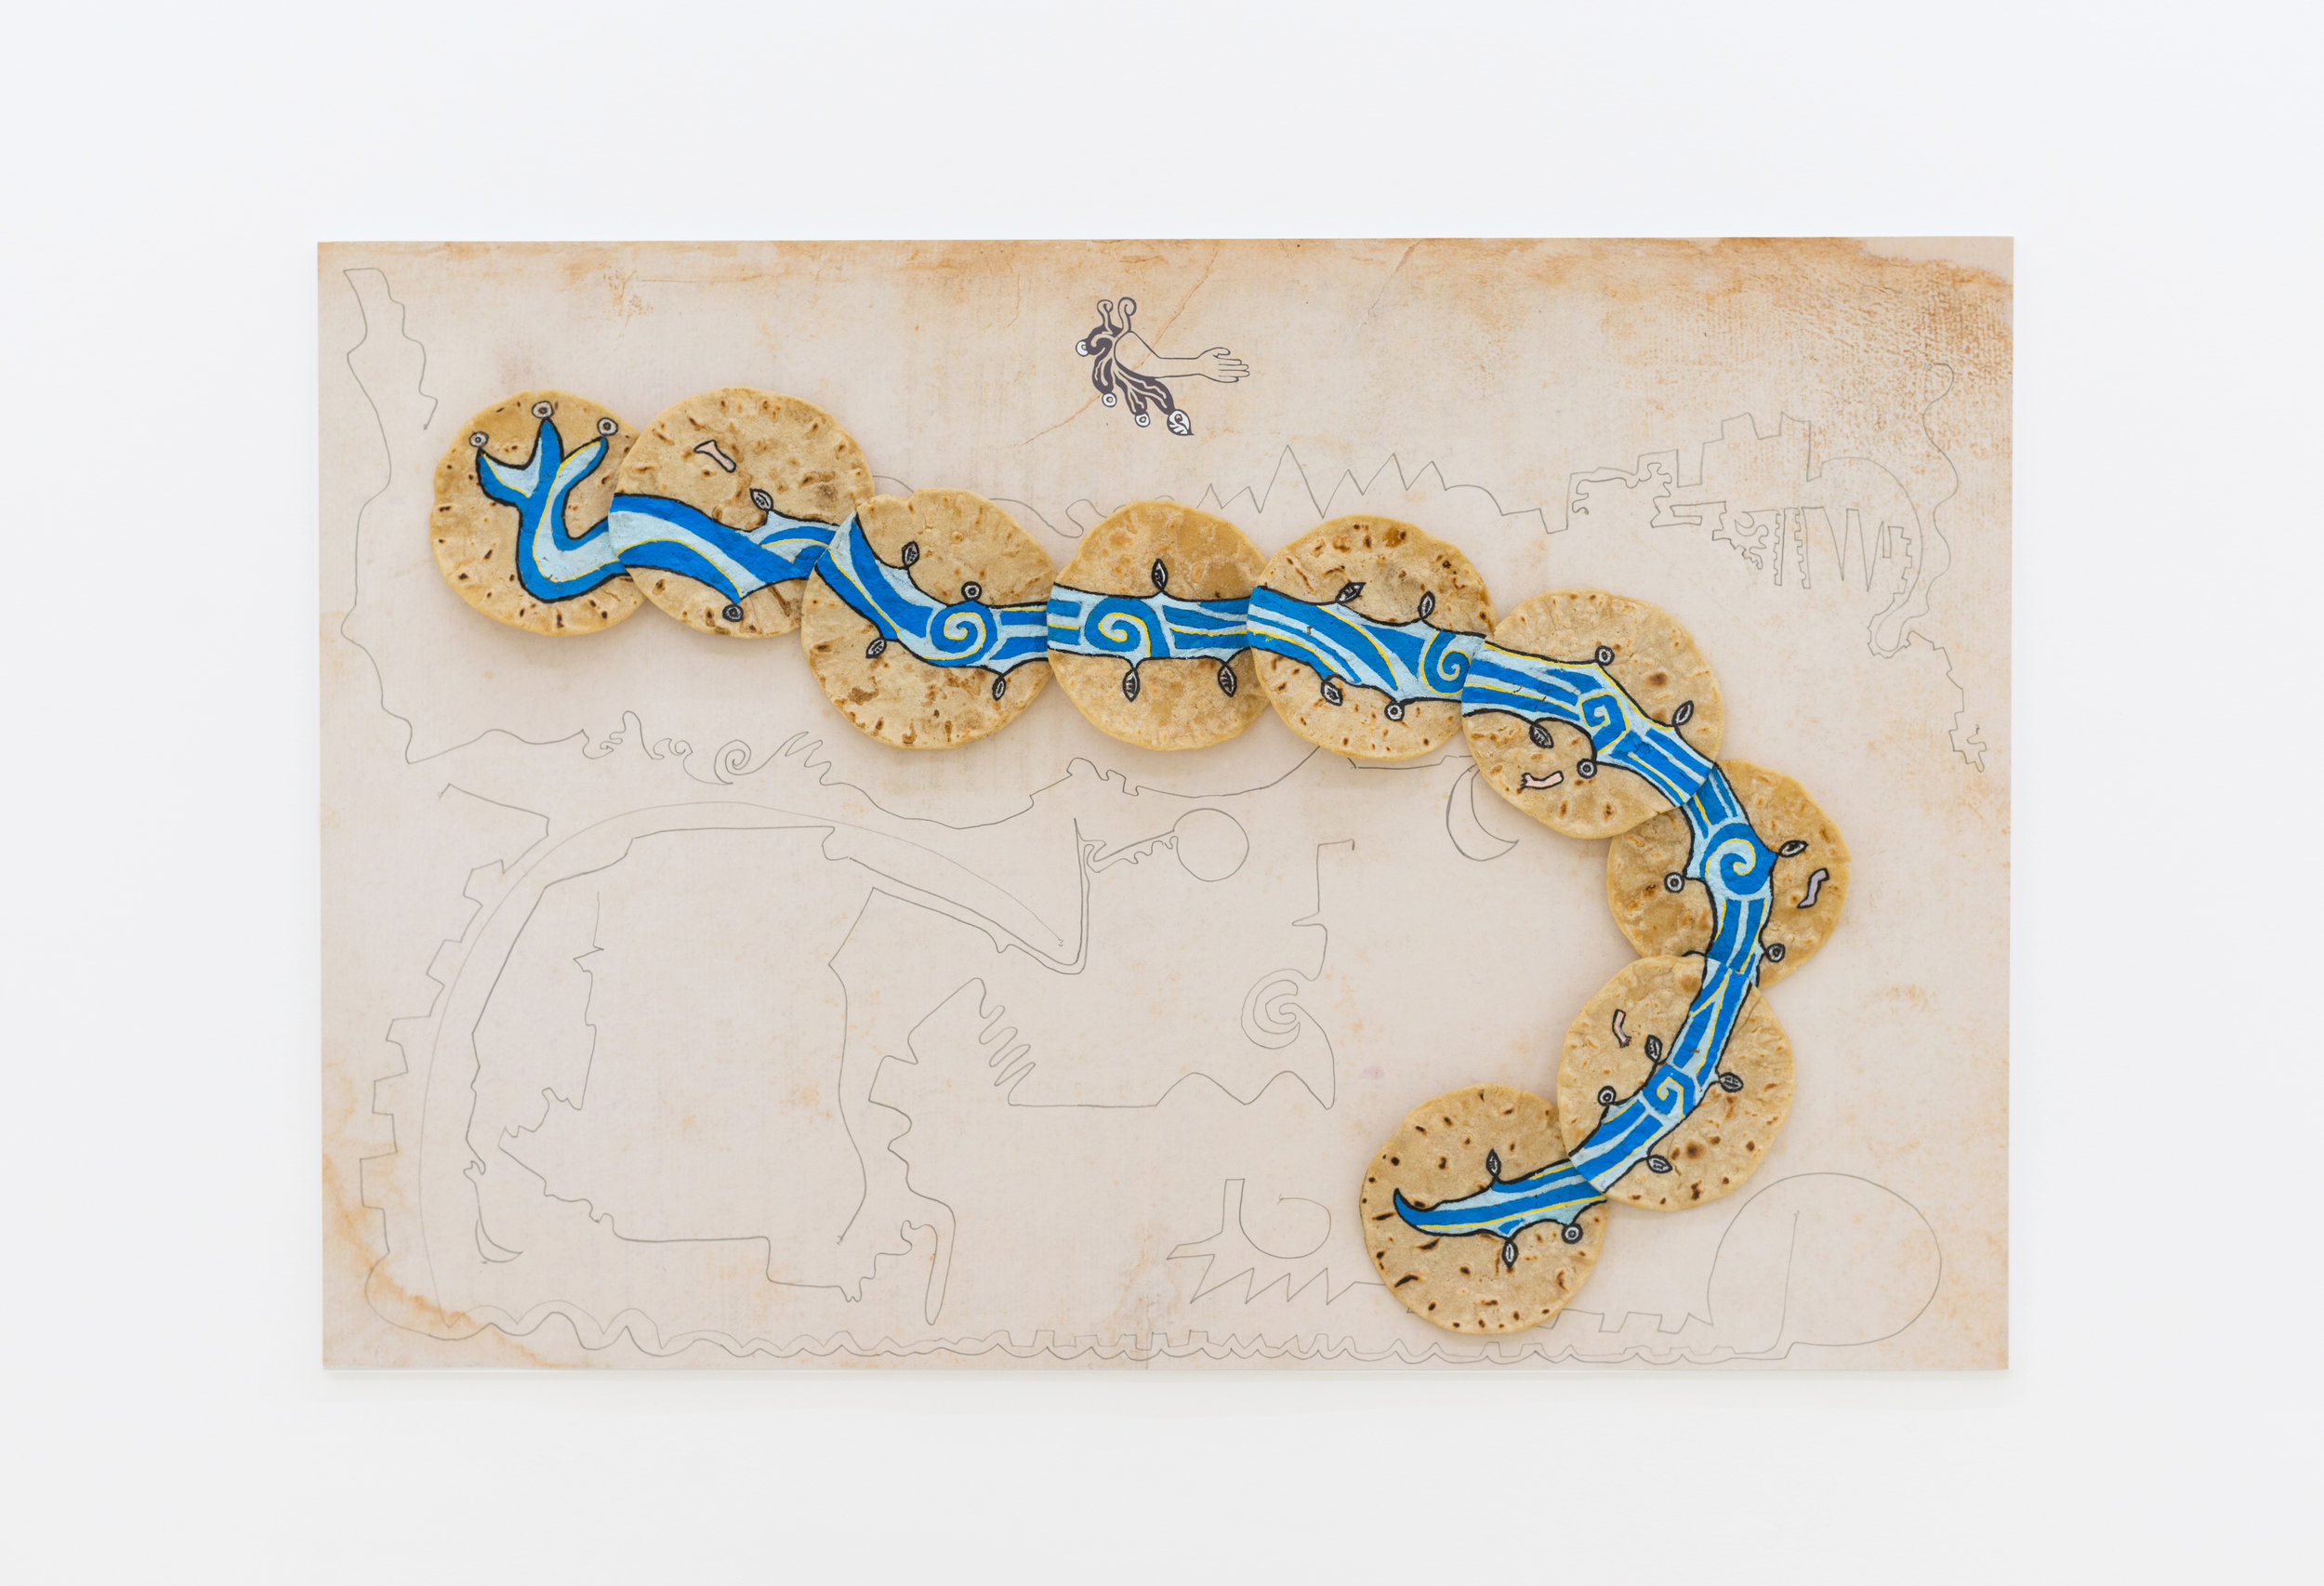 Guadalupe Maravilla   Tripa Chuca #2 (Border River),  2019 Archival ink jet print with hand drawing and tortilla painting  30 x 20 inches